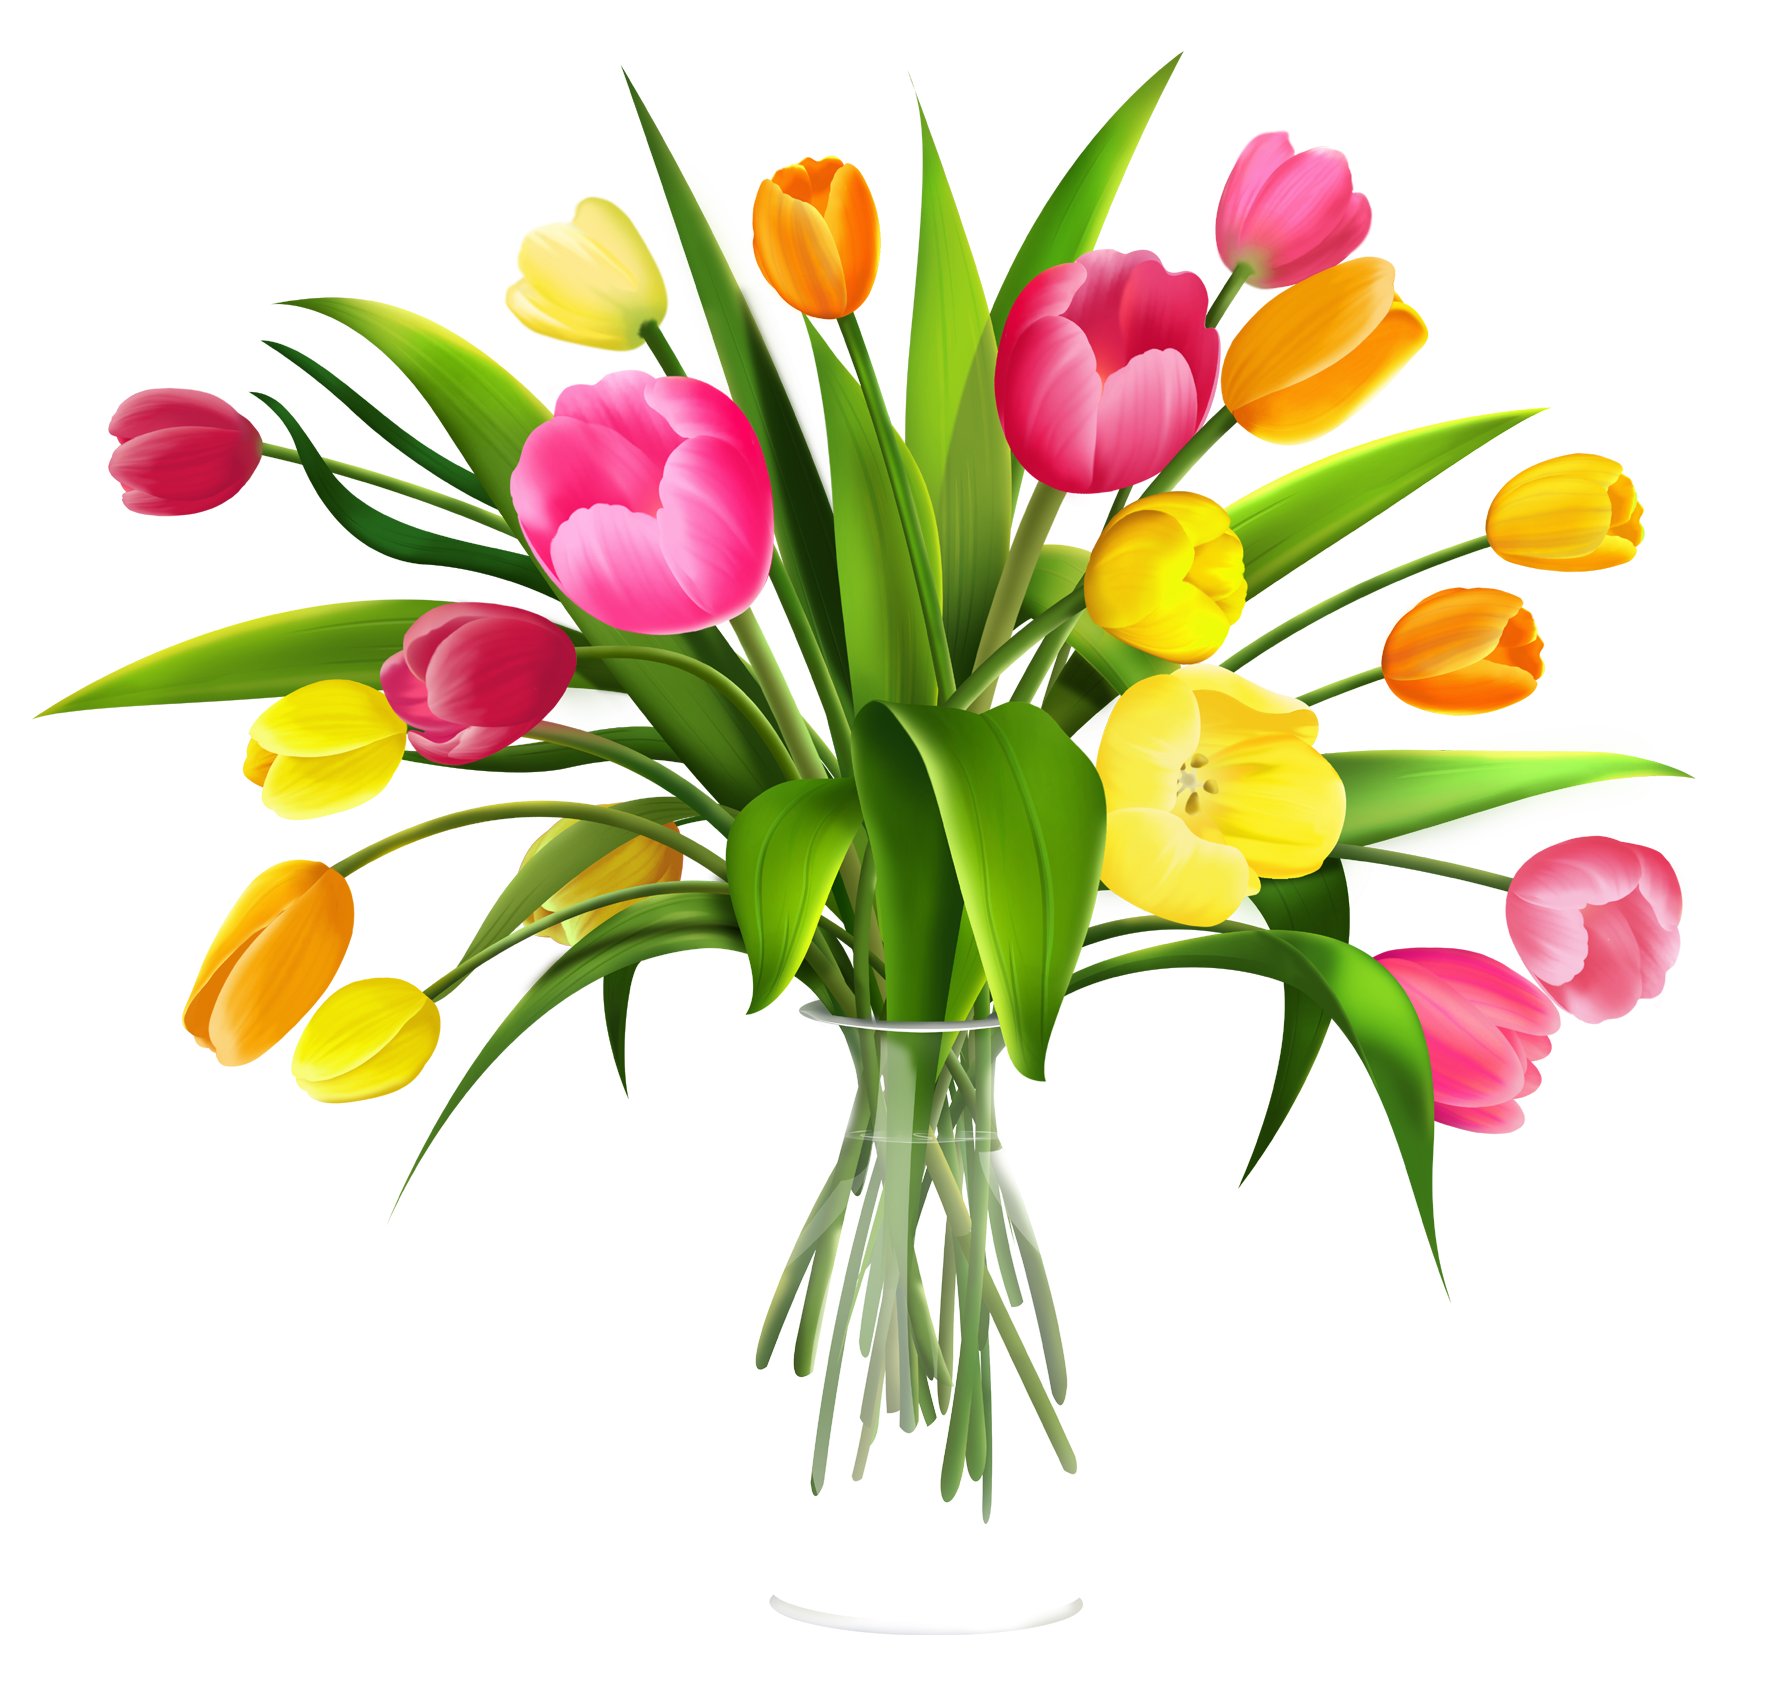 free clip art flowers in vase use these free images for your rh pinterest com free flower clip art free free flower clip art roses